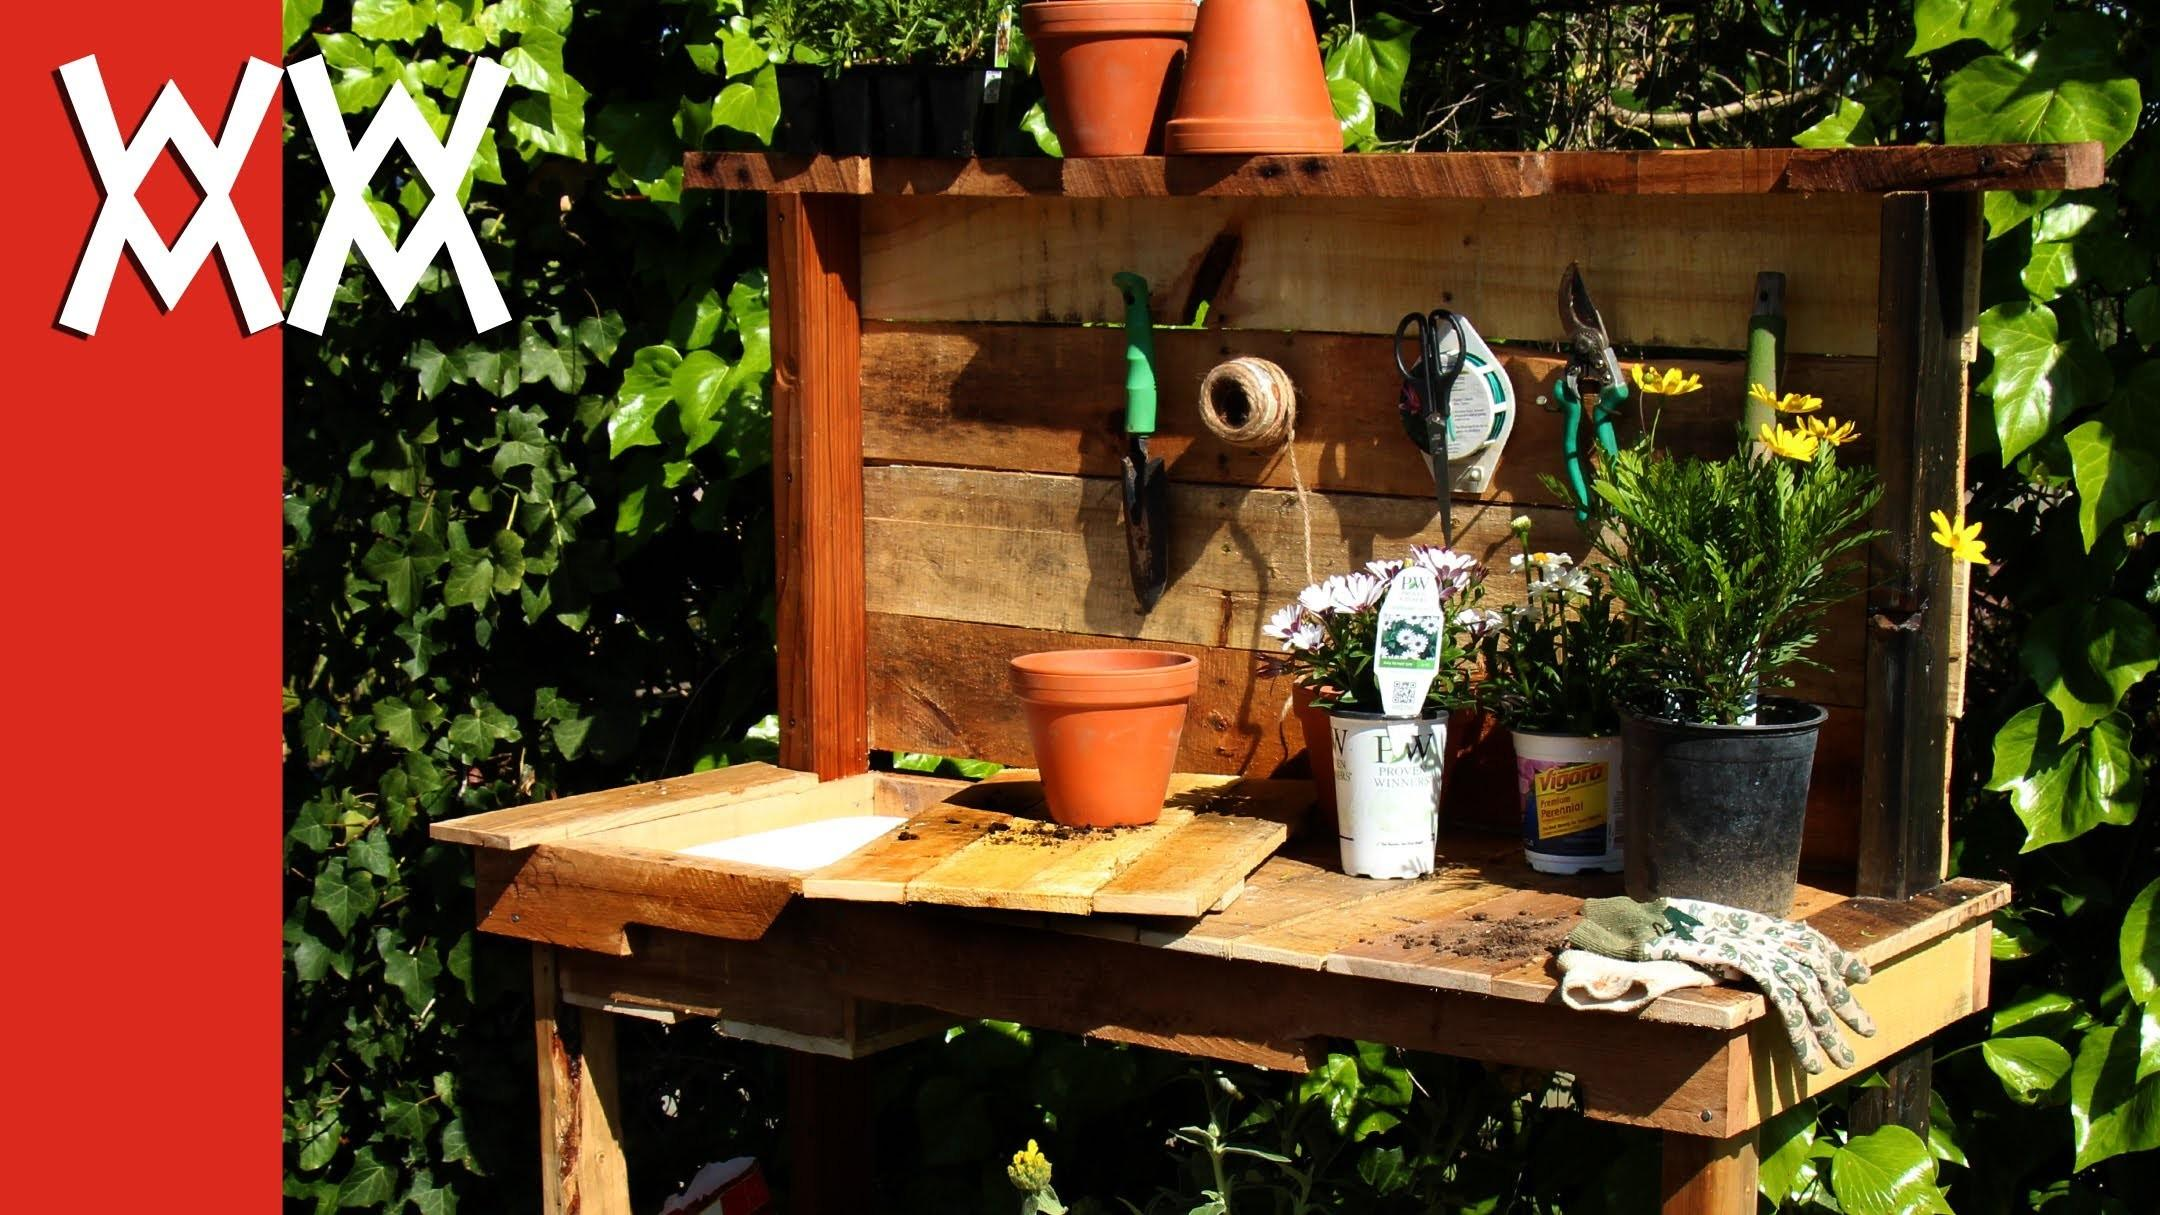 Make Rustic Potting Bench Diy Project Using Upcycled